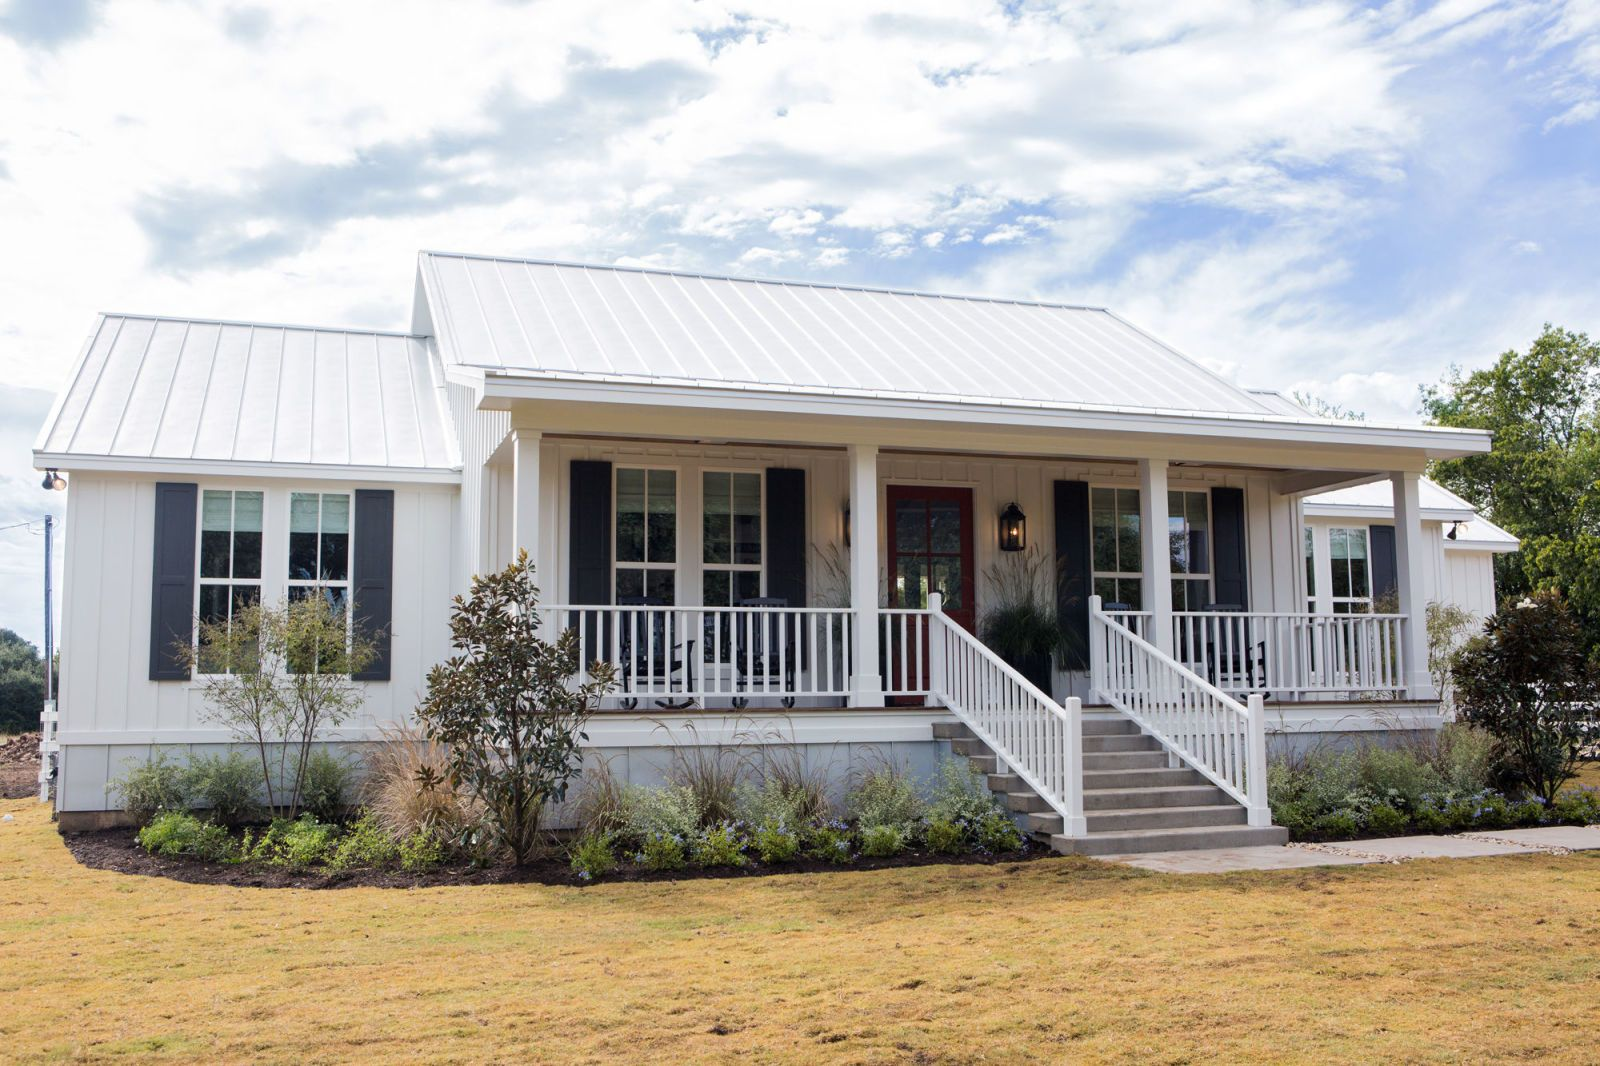 Joanna Gaines Transformed This Crumbling Shack Into A Gorgeous Farmhouse Fixer Upper House House Exterior Fixer Upper